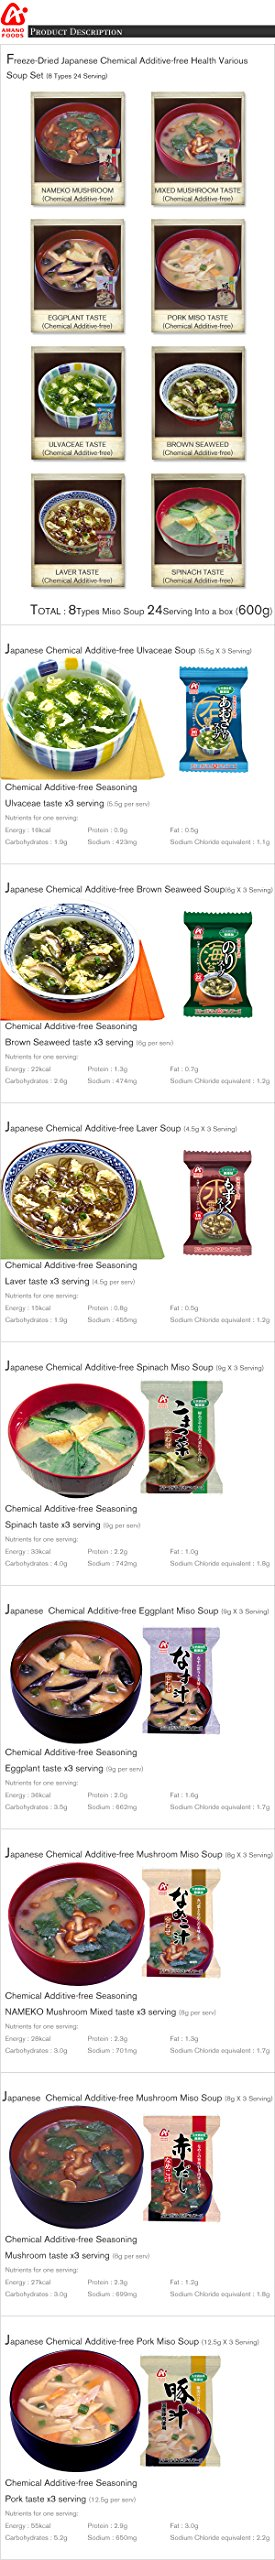 Japan Freeze Dried Survival Food Chemical Additive-free Health Various Soup Set 8 Types 24 Servings